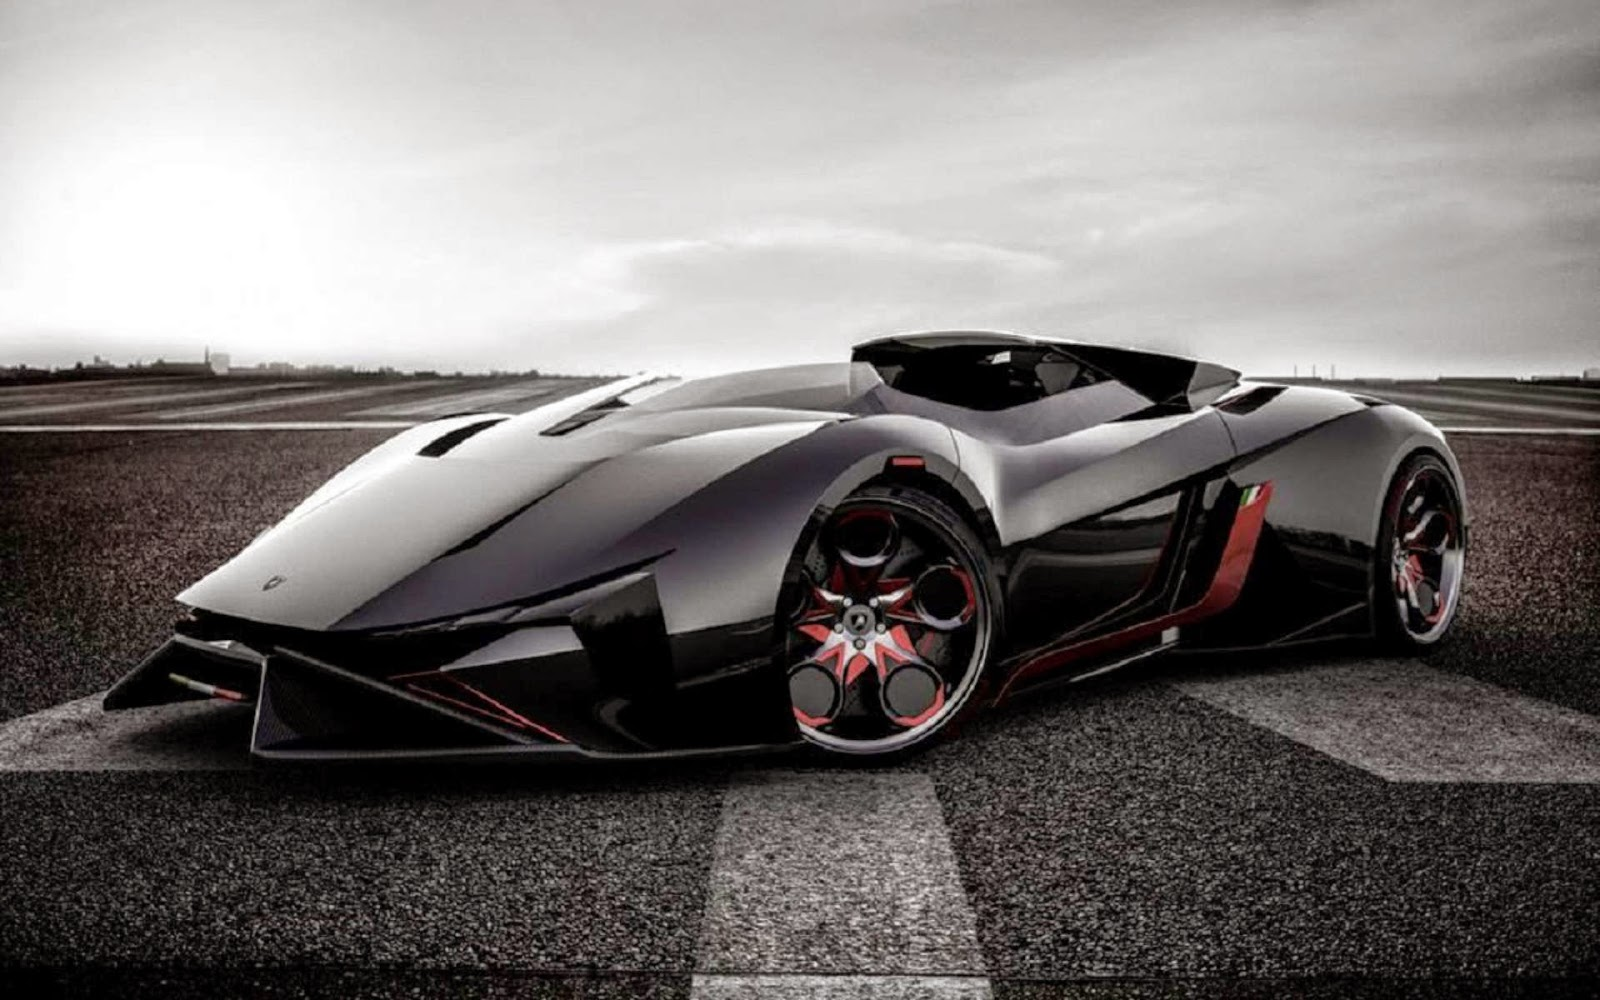 FutUre LamBorghiNi CaRs HD WallpApers -o- | Wallpaper ...